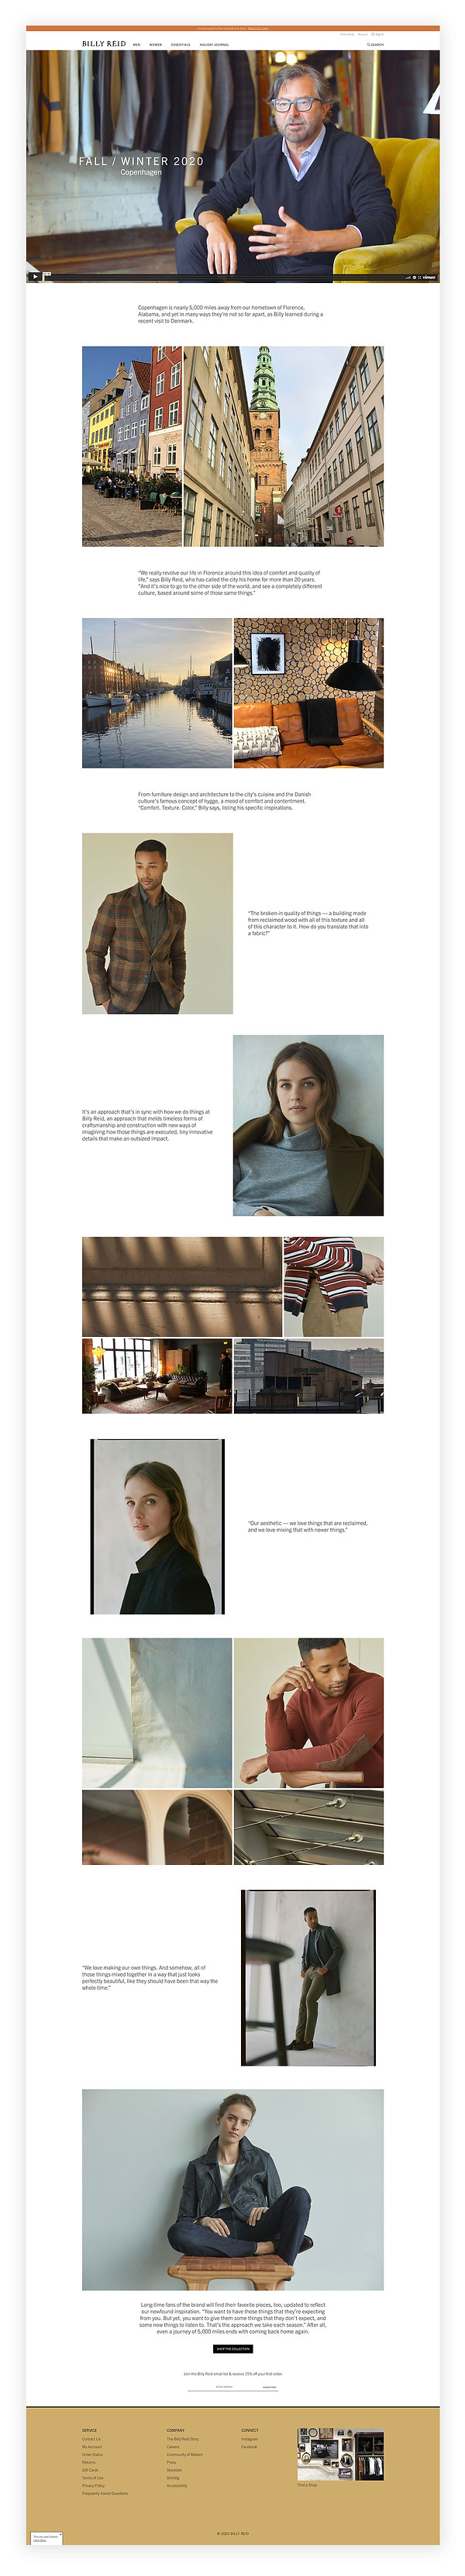 BR_FW20-page.jpg